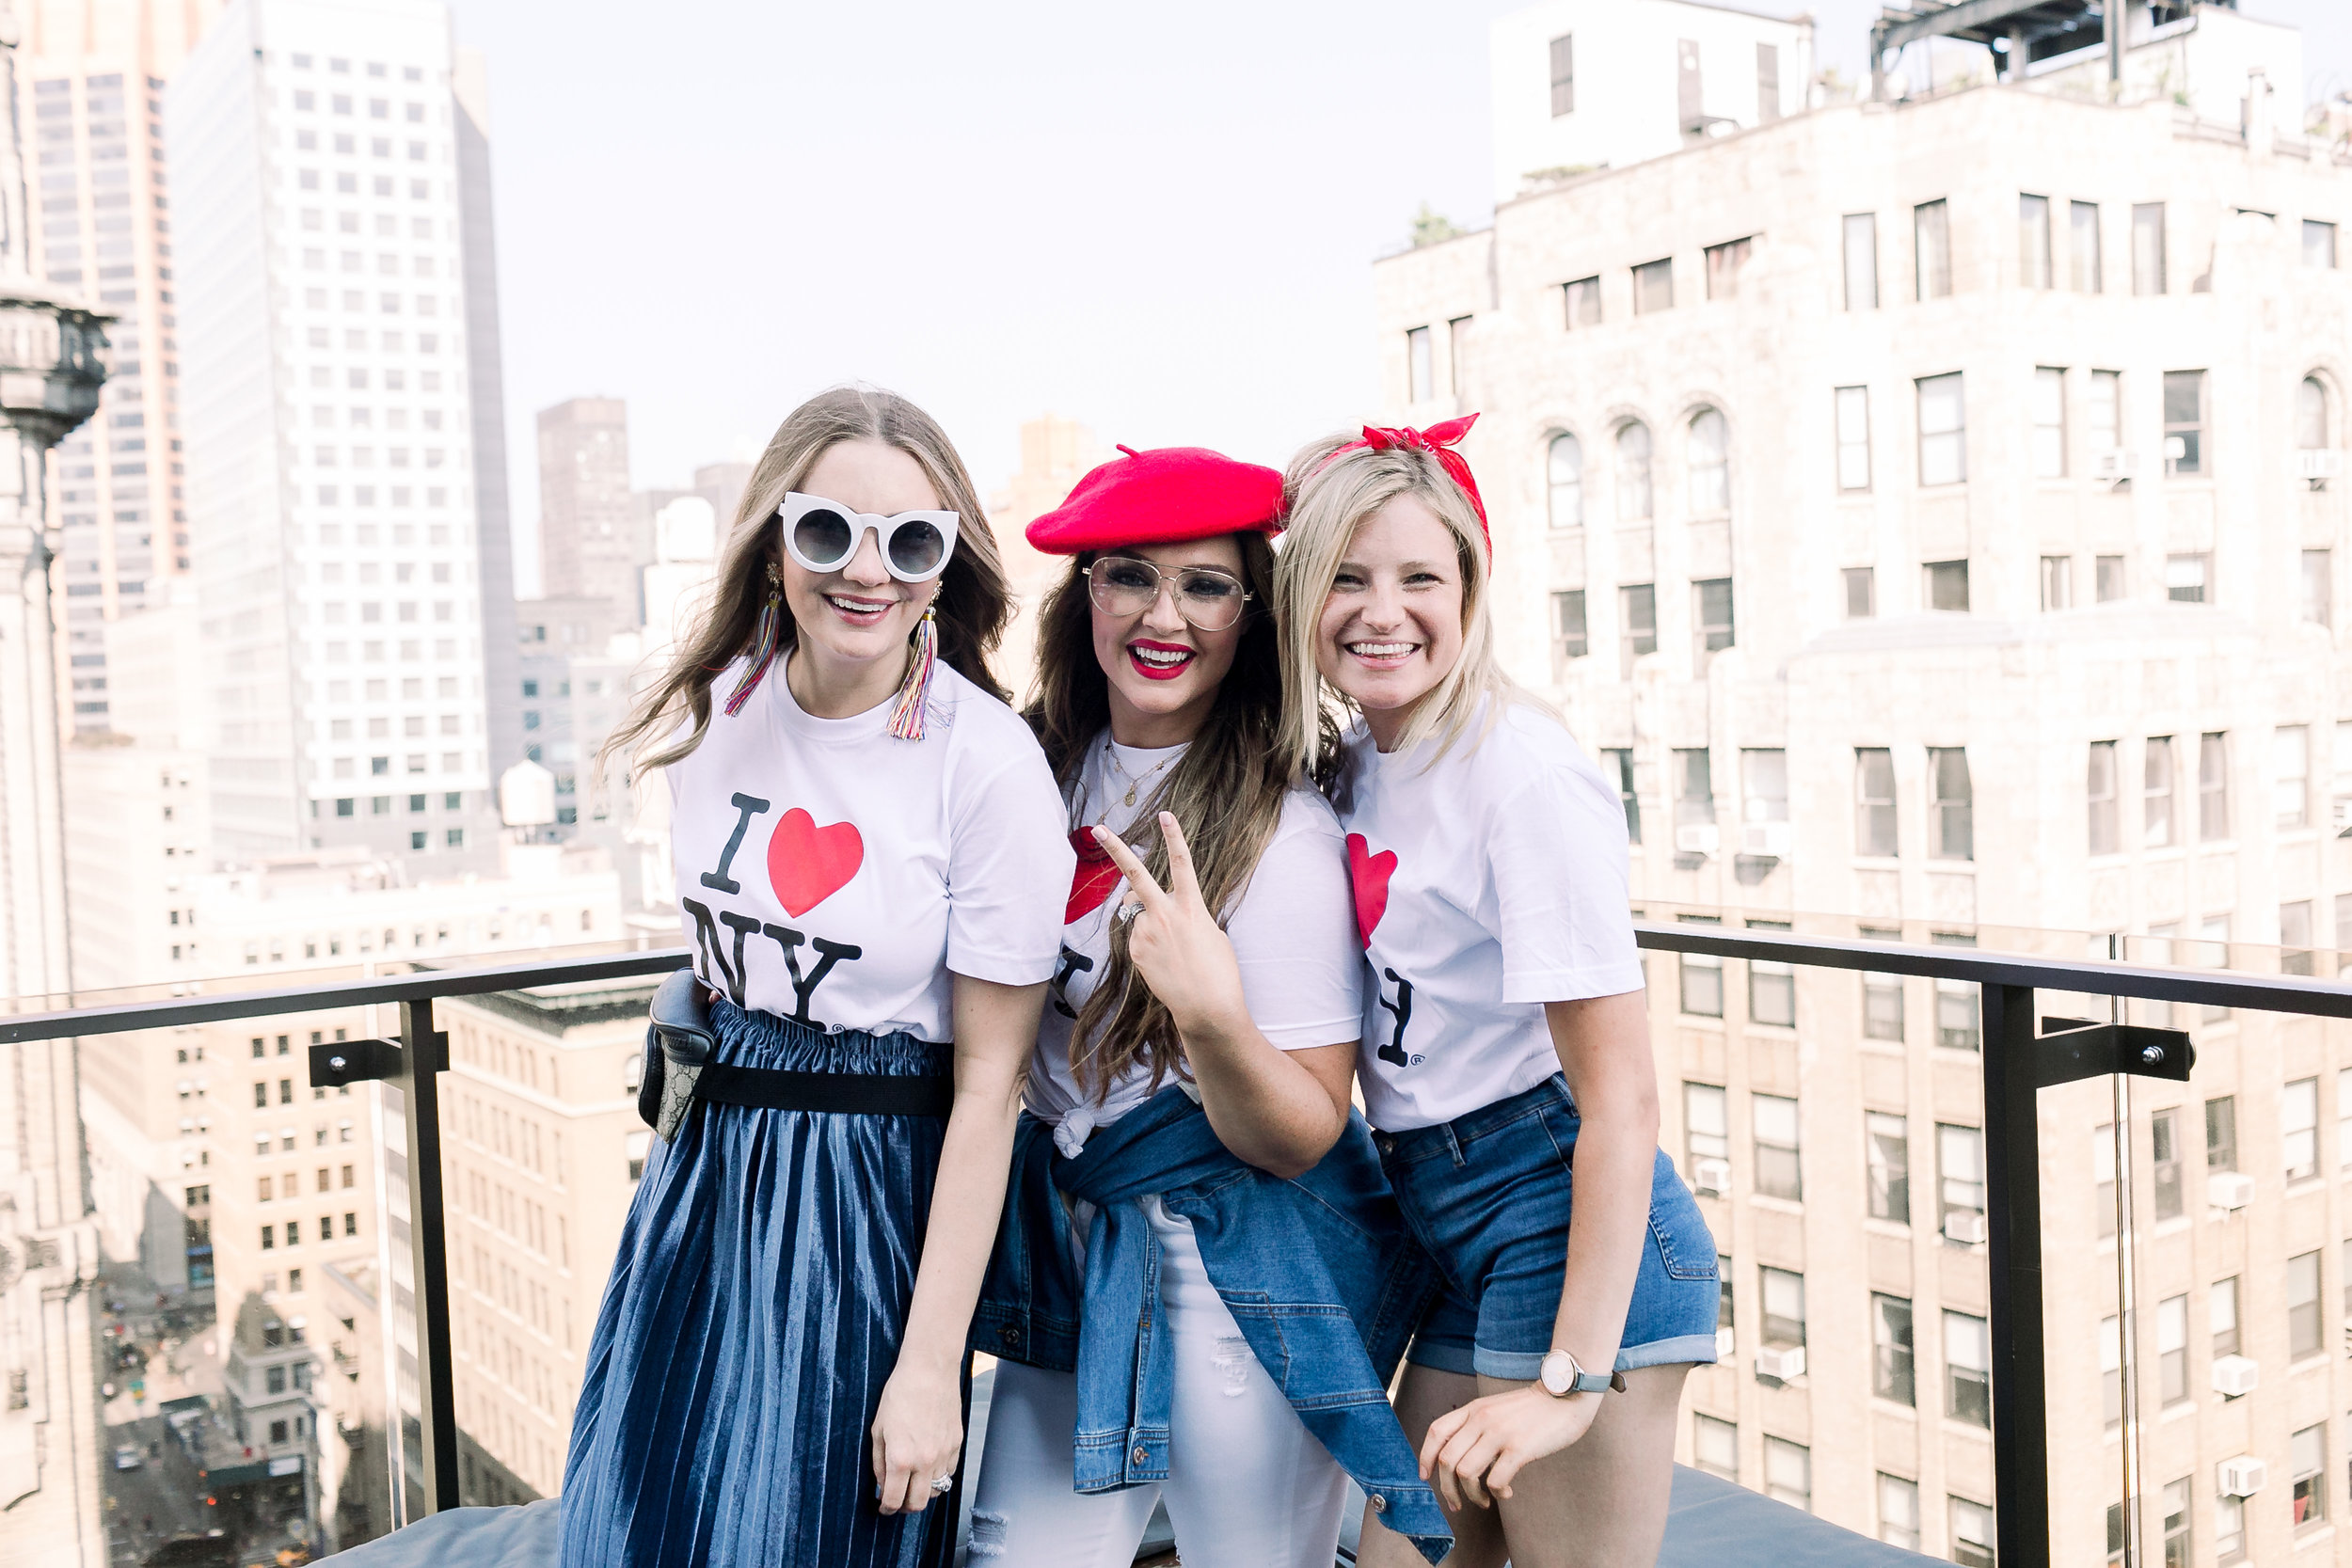 Collins Tuohy Smith and Megan Bonner and Mary Kate Steele NYC rooftop NYFW by Mary Kate Steele Photography